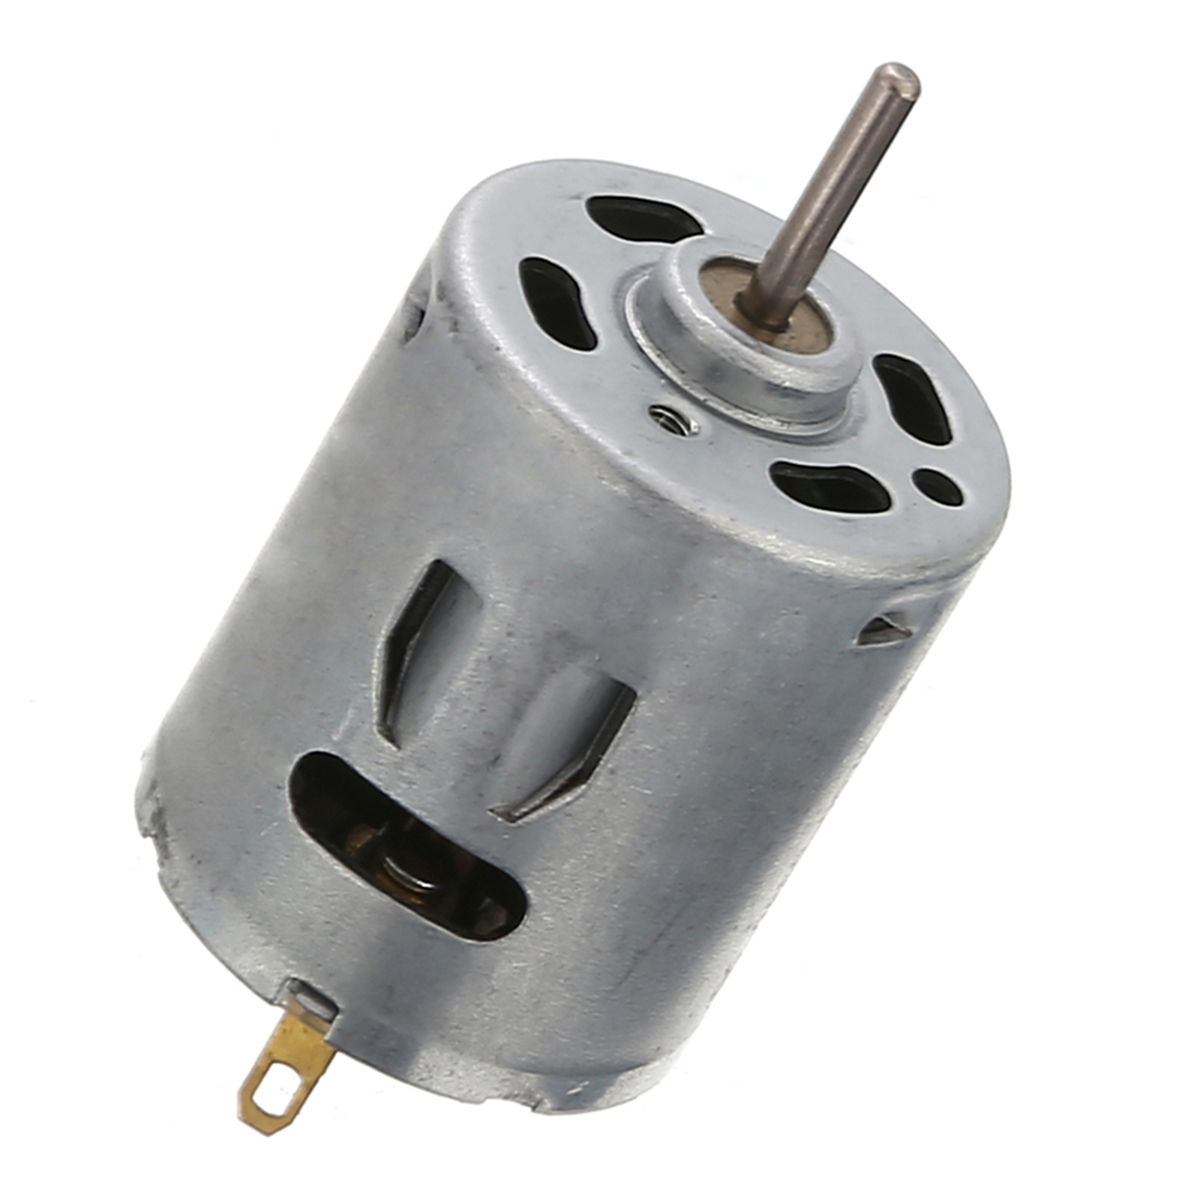 6-12V 5000RPM Hobby Mini DC Motor 365 for DIY Small Electric Drill Motor Sale